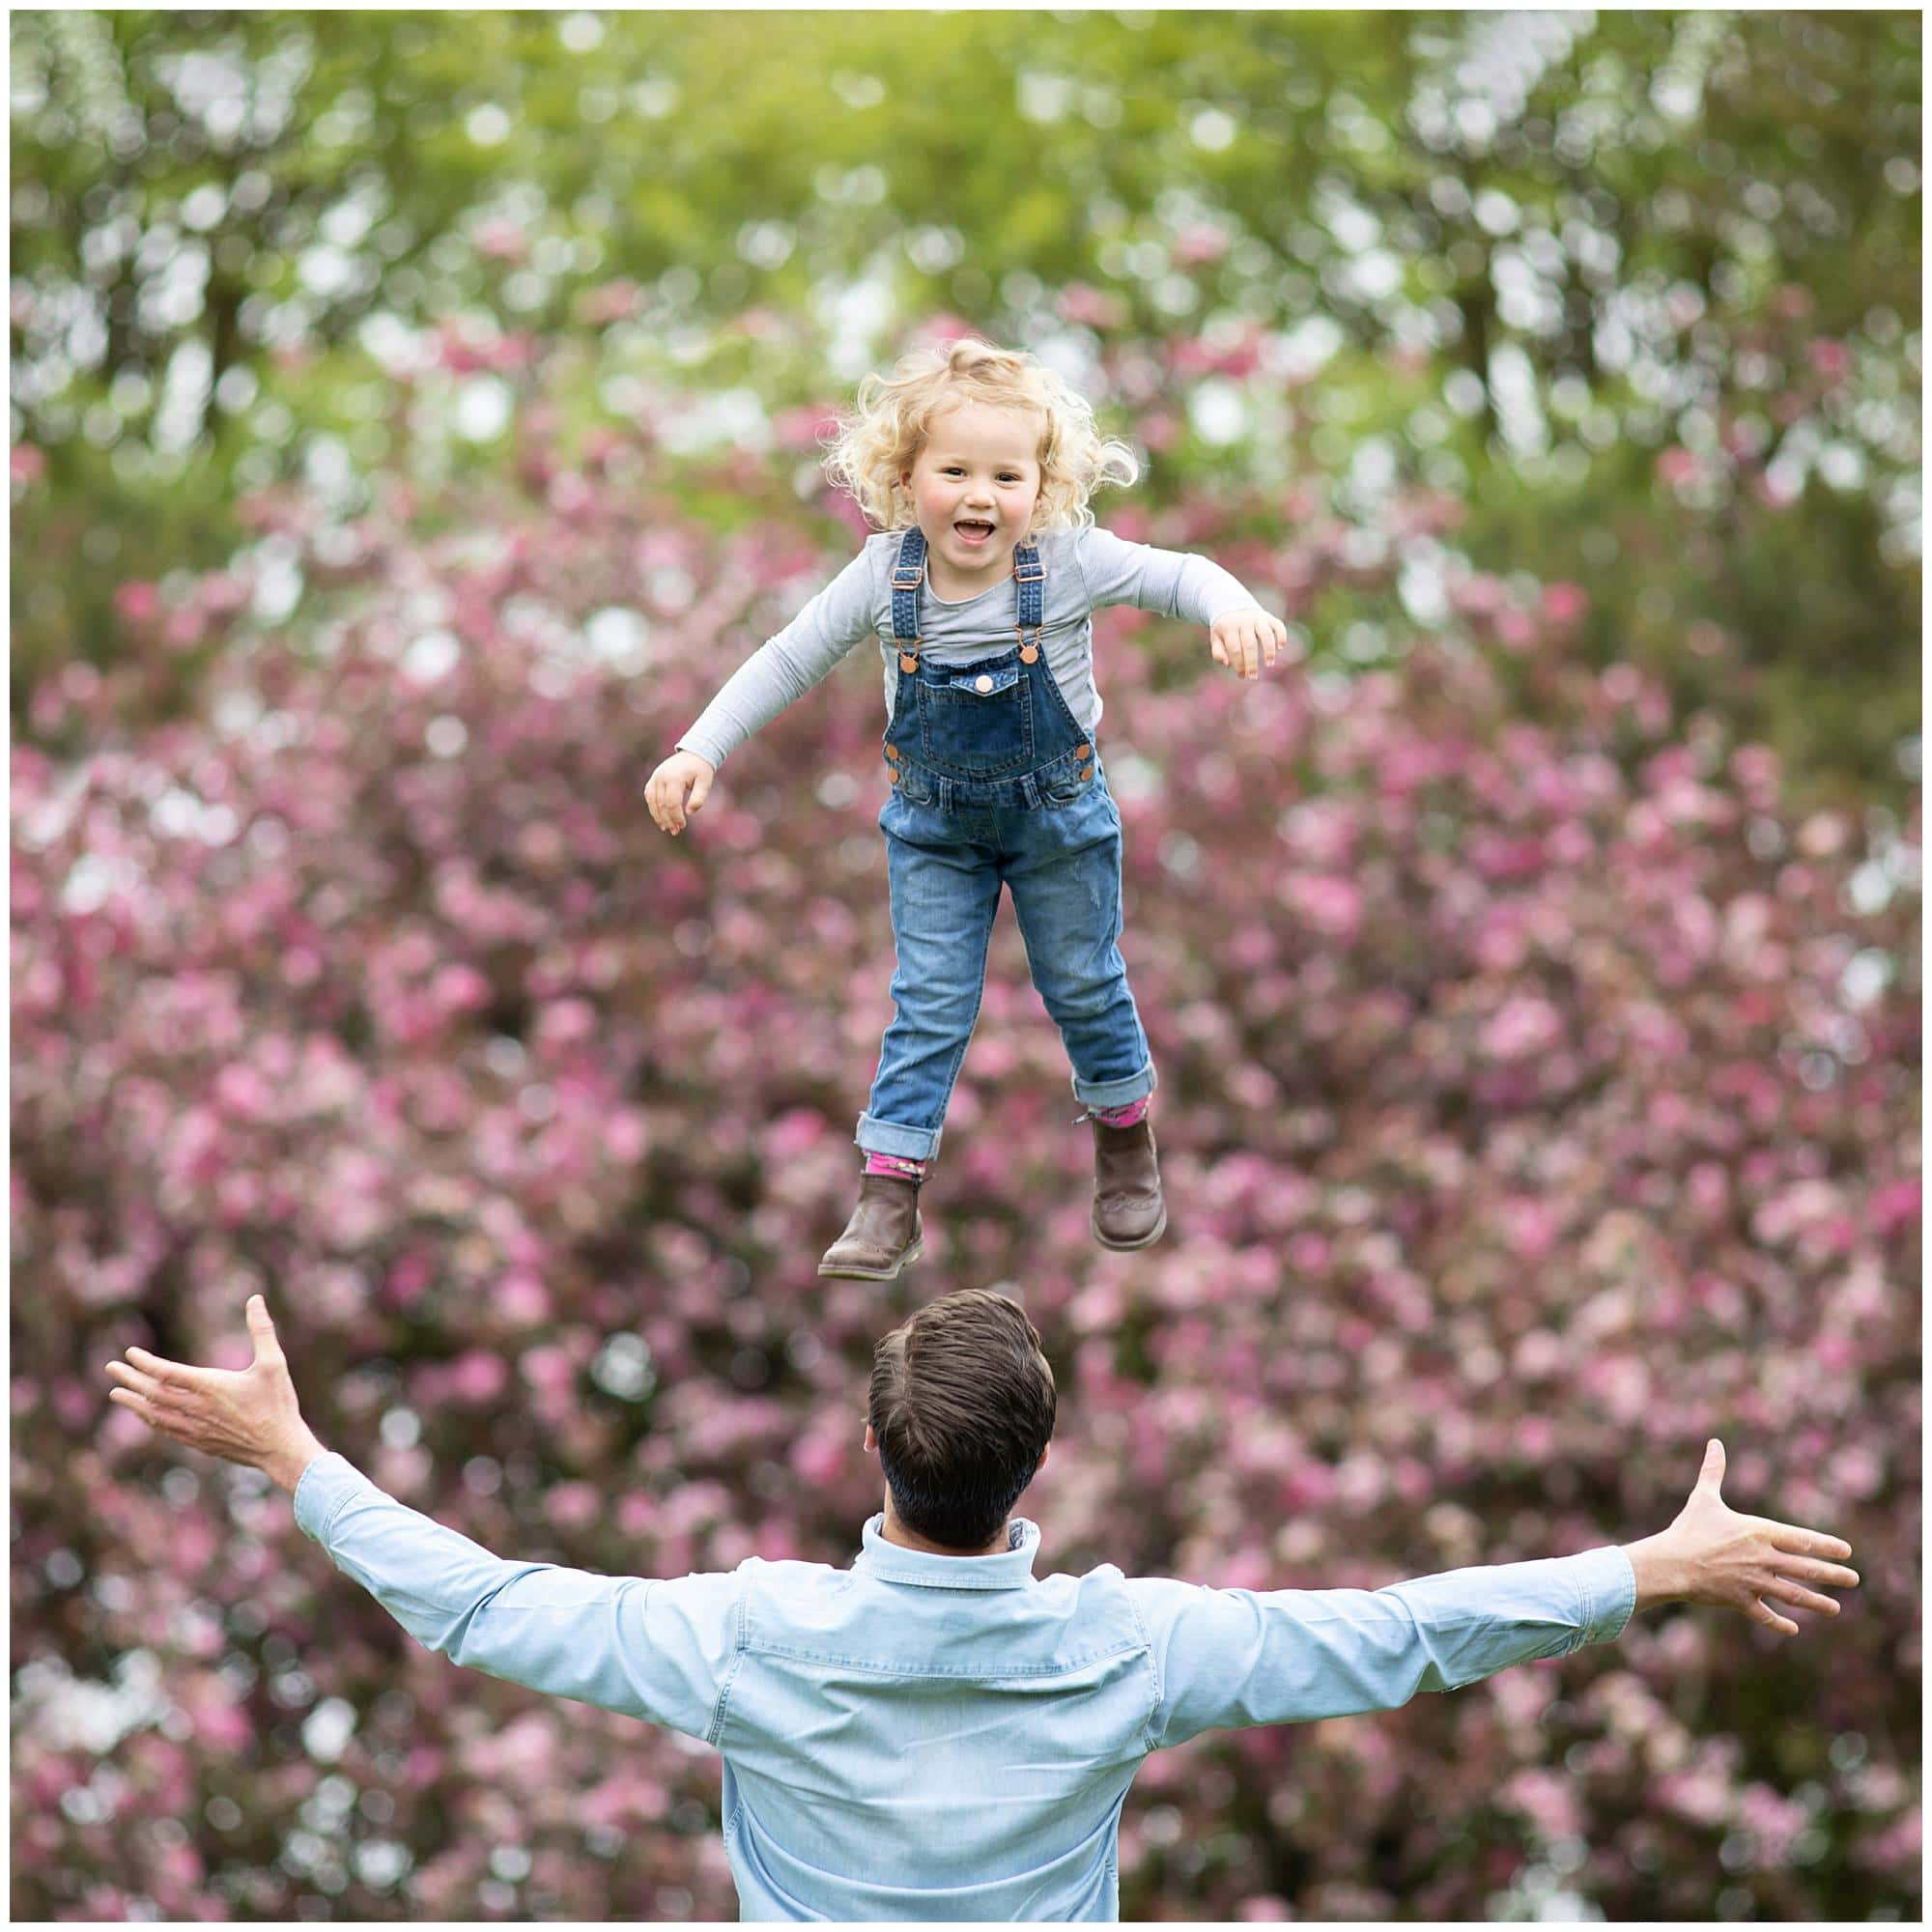 Little girl laughs as she is thrown up in the air by her Dad with a blossom tree in the background